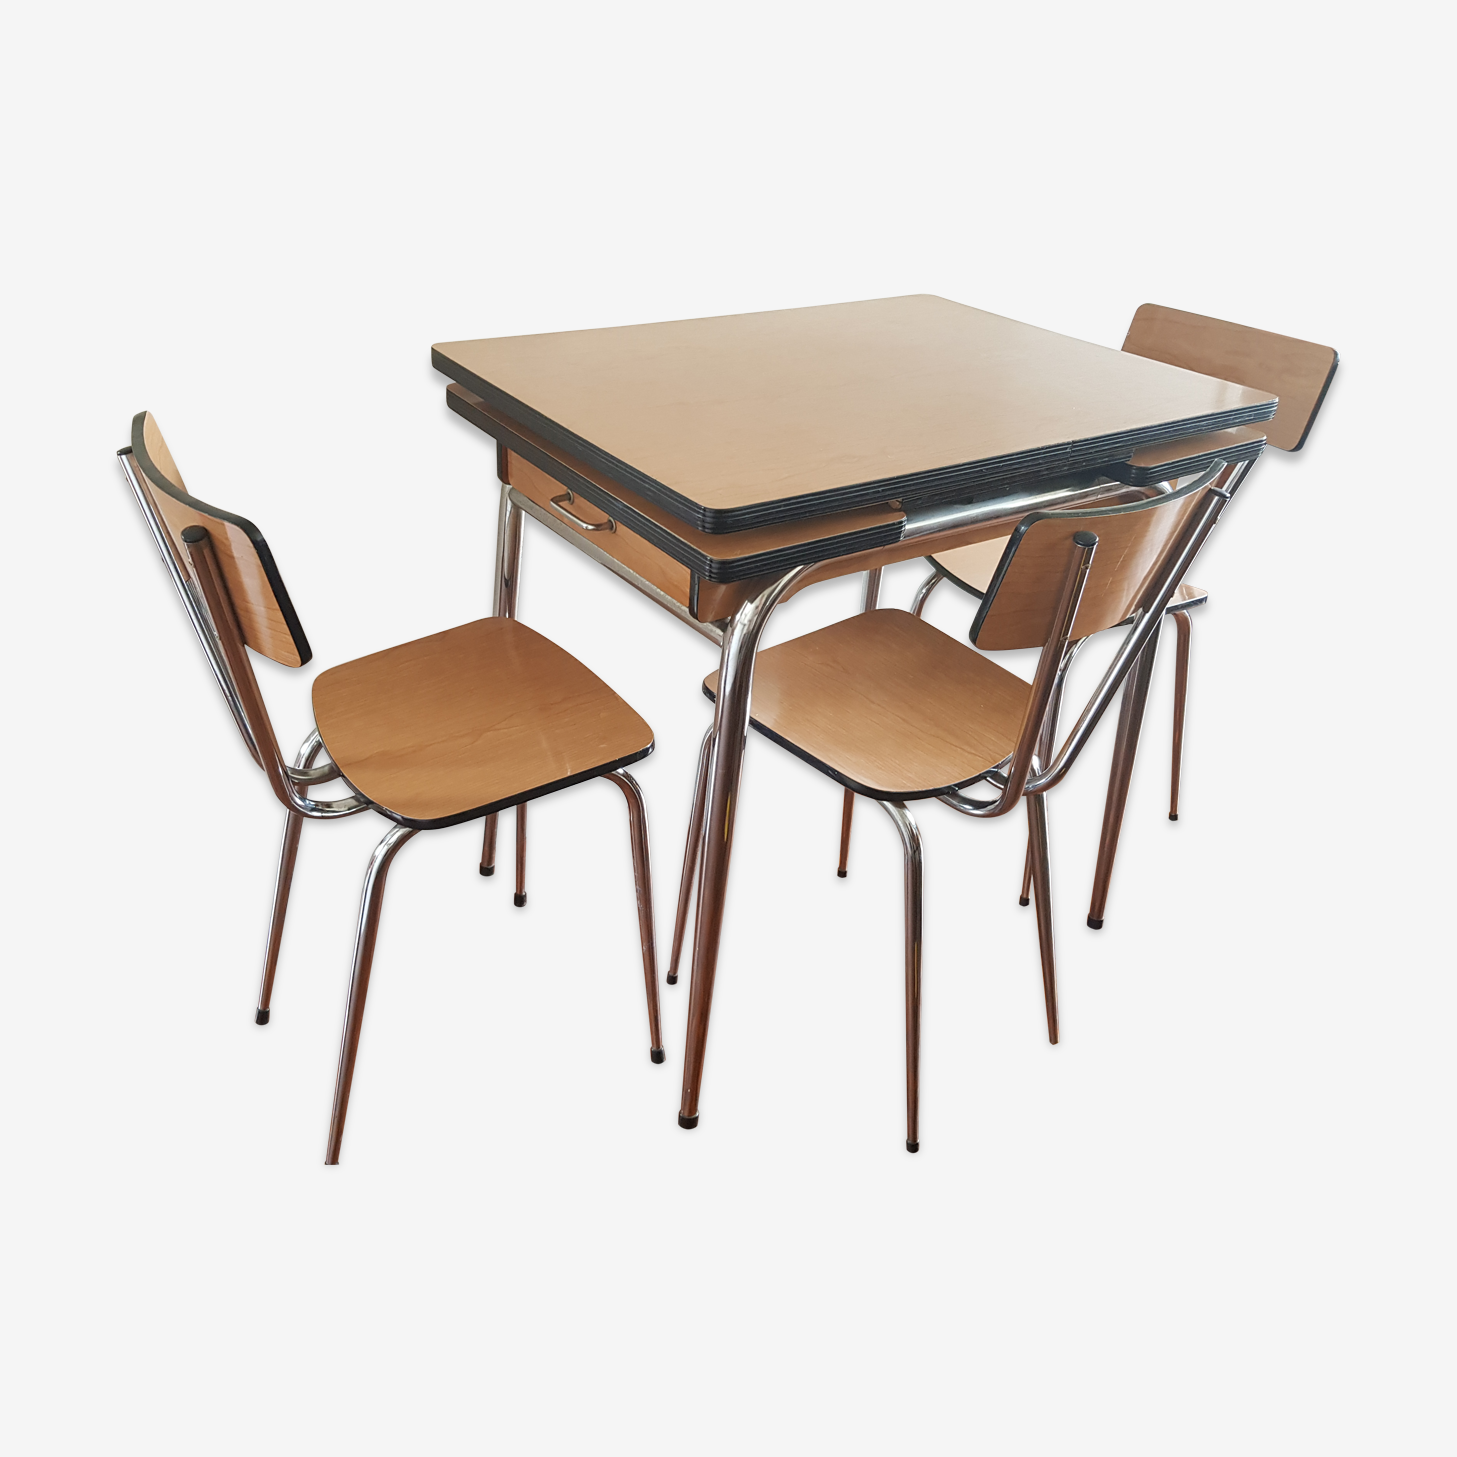 Formica table with 3 chairs